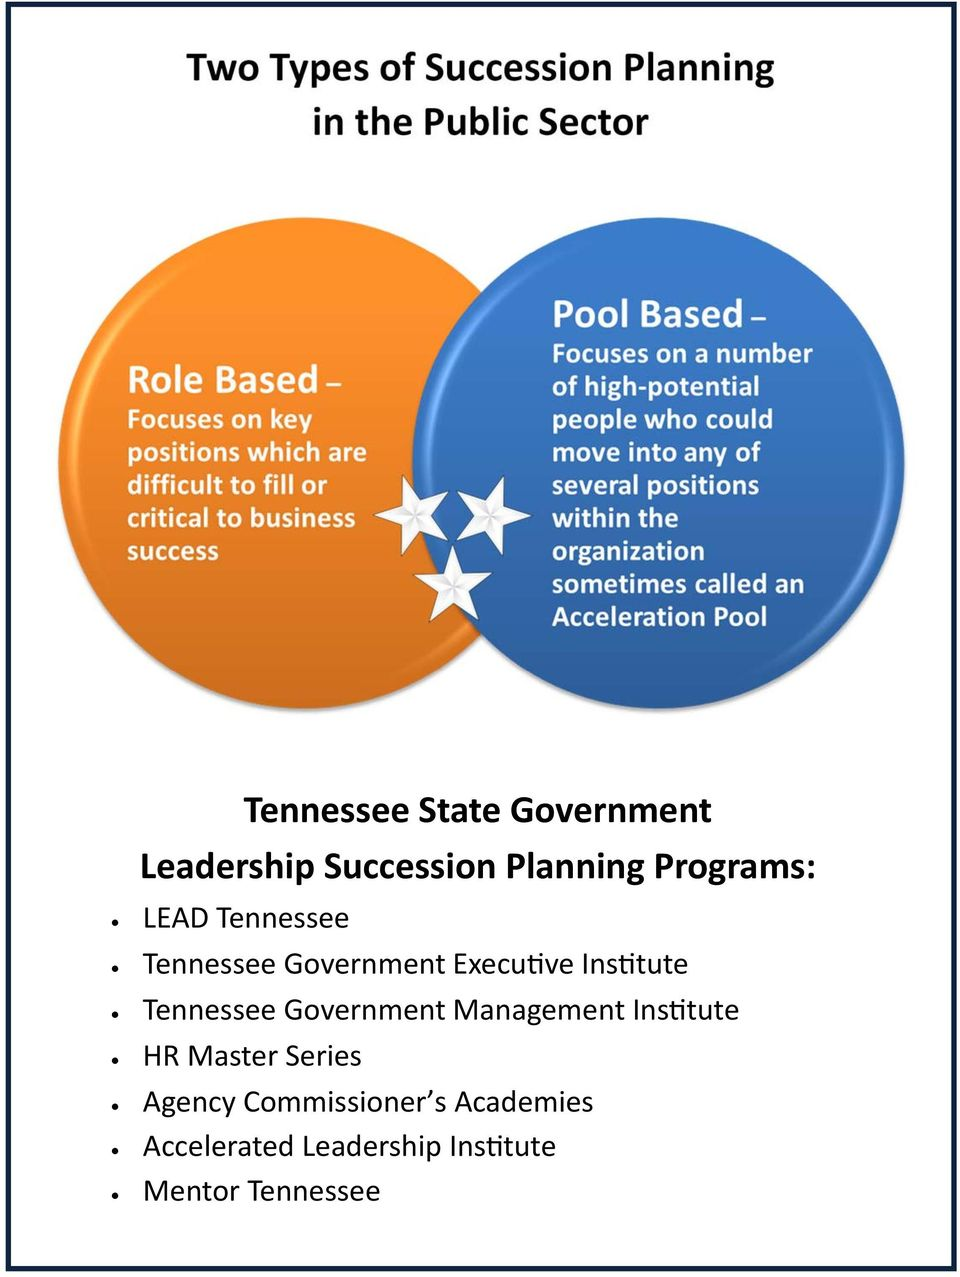 Government Execu ve Ins tute Tennessee Government Management Ins tute HR